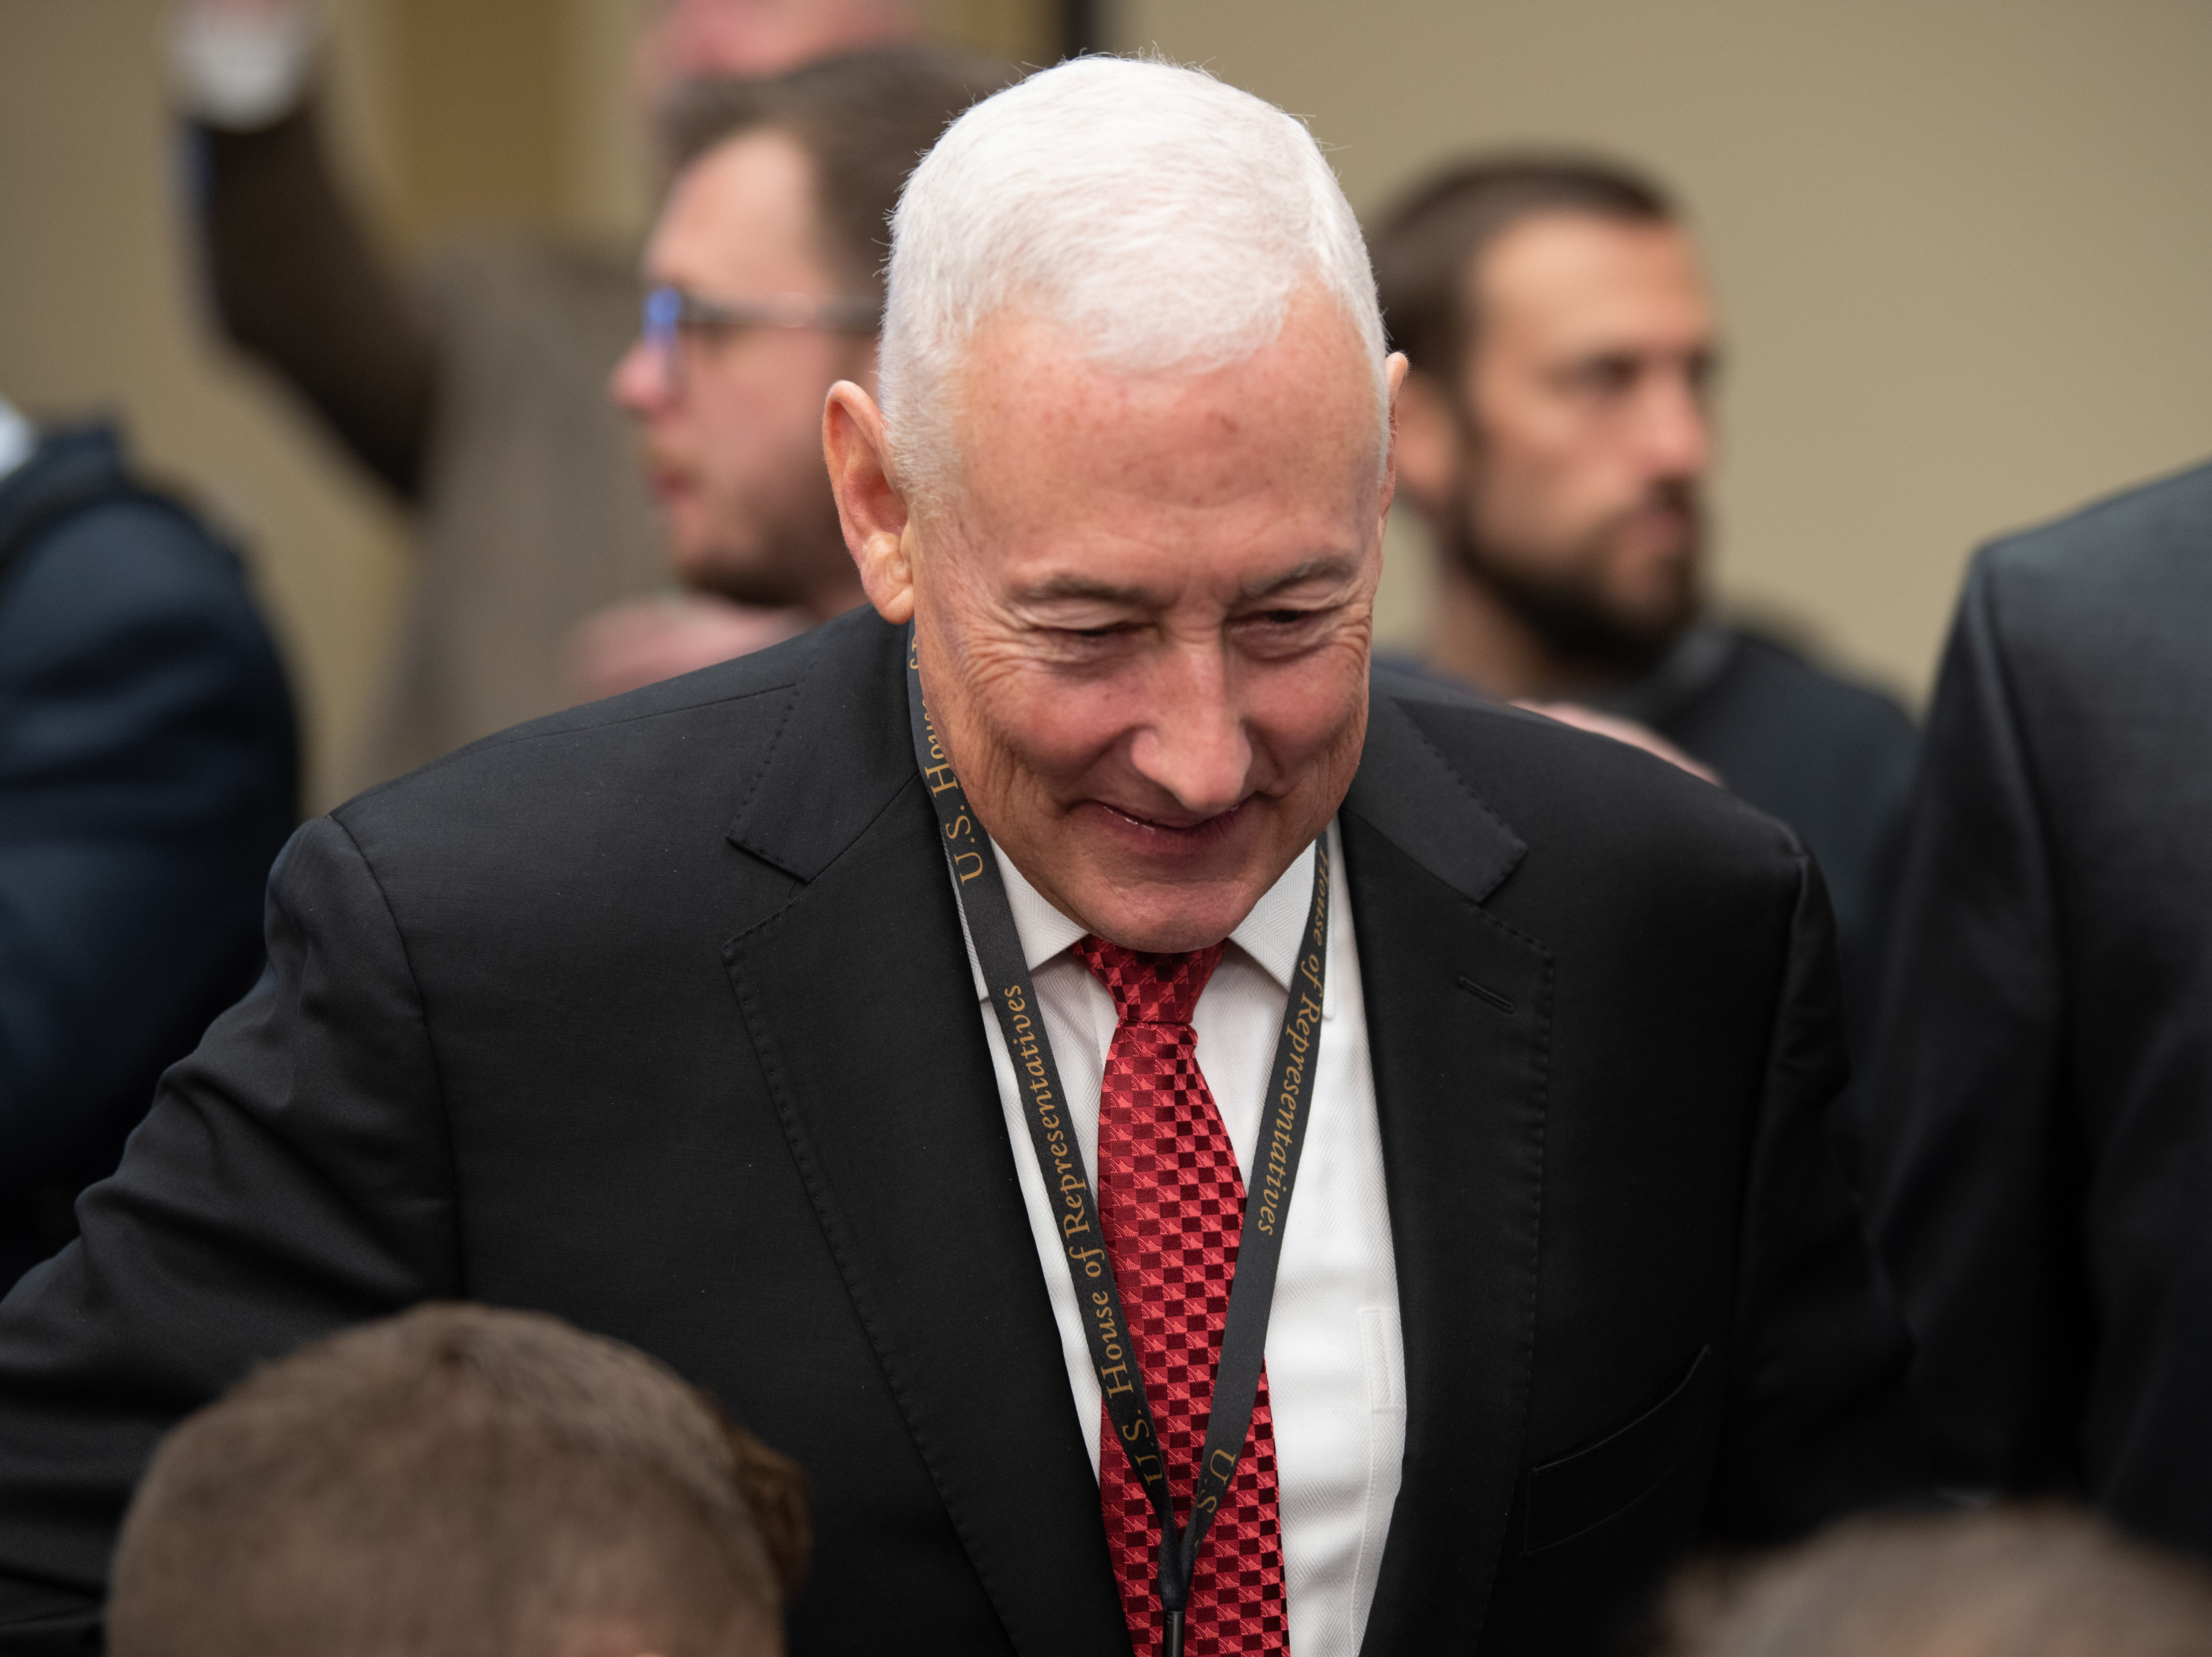 {Nov. 30, 2018} {10:30 a.m.} -- Washington, DC  -- Rep. Elect Greg Pence (R, IN) attends the lottery that determines the order in which new members of Congress will select their offices. -- Photo by Hannah Gaber, USA TODAY Staff